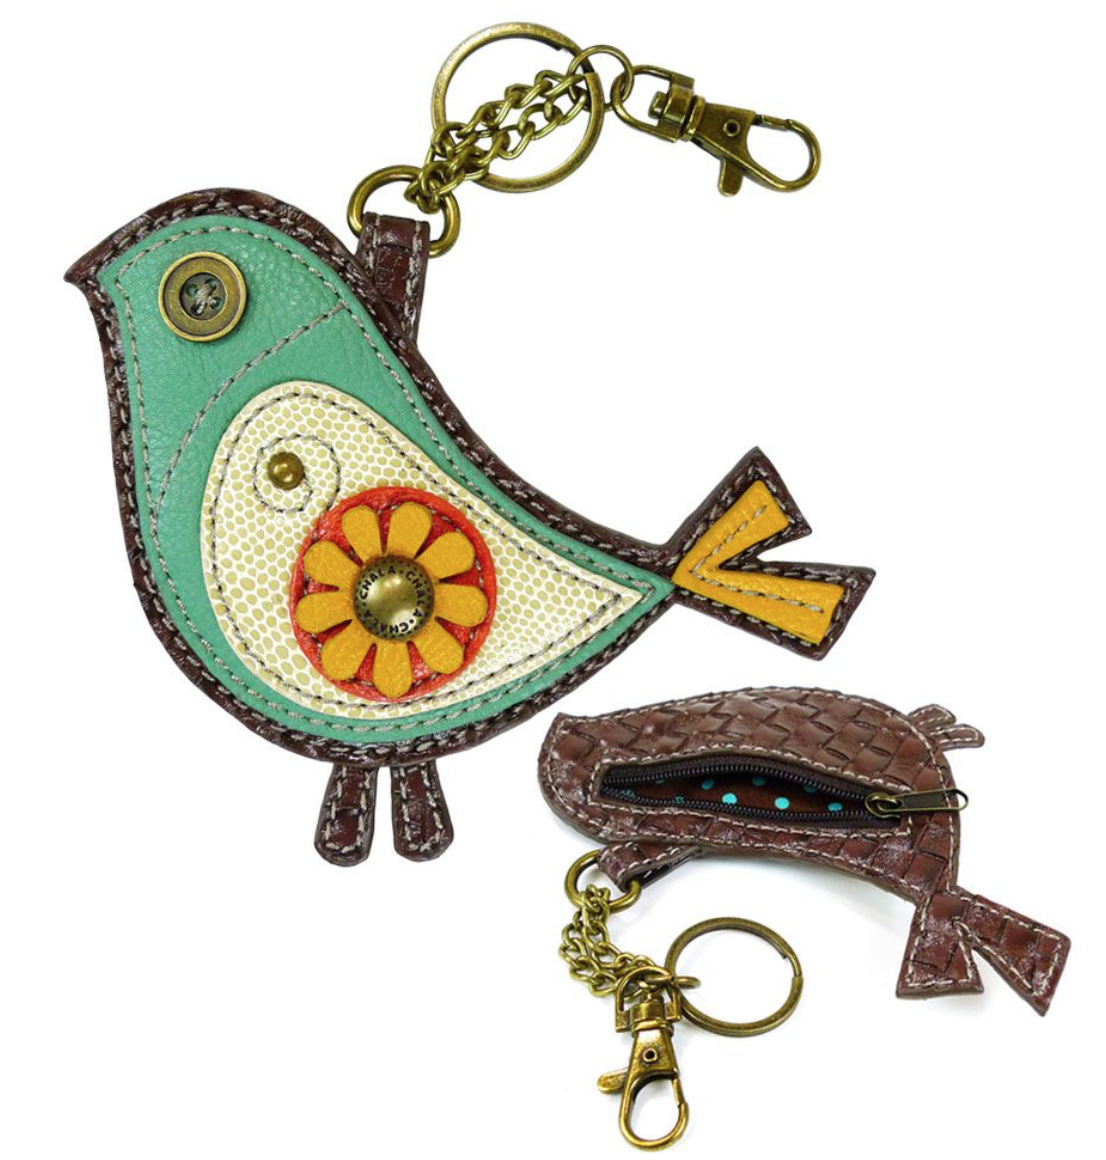 Aqua Blue Bird with Yellow Flower Key Fob